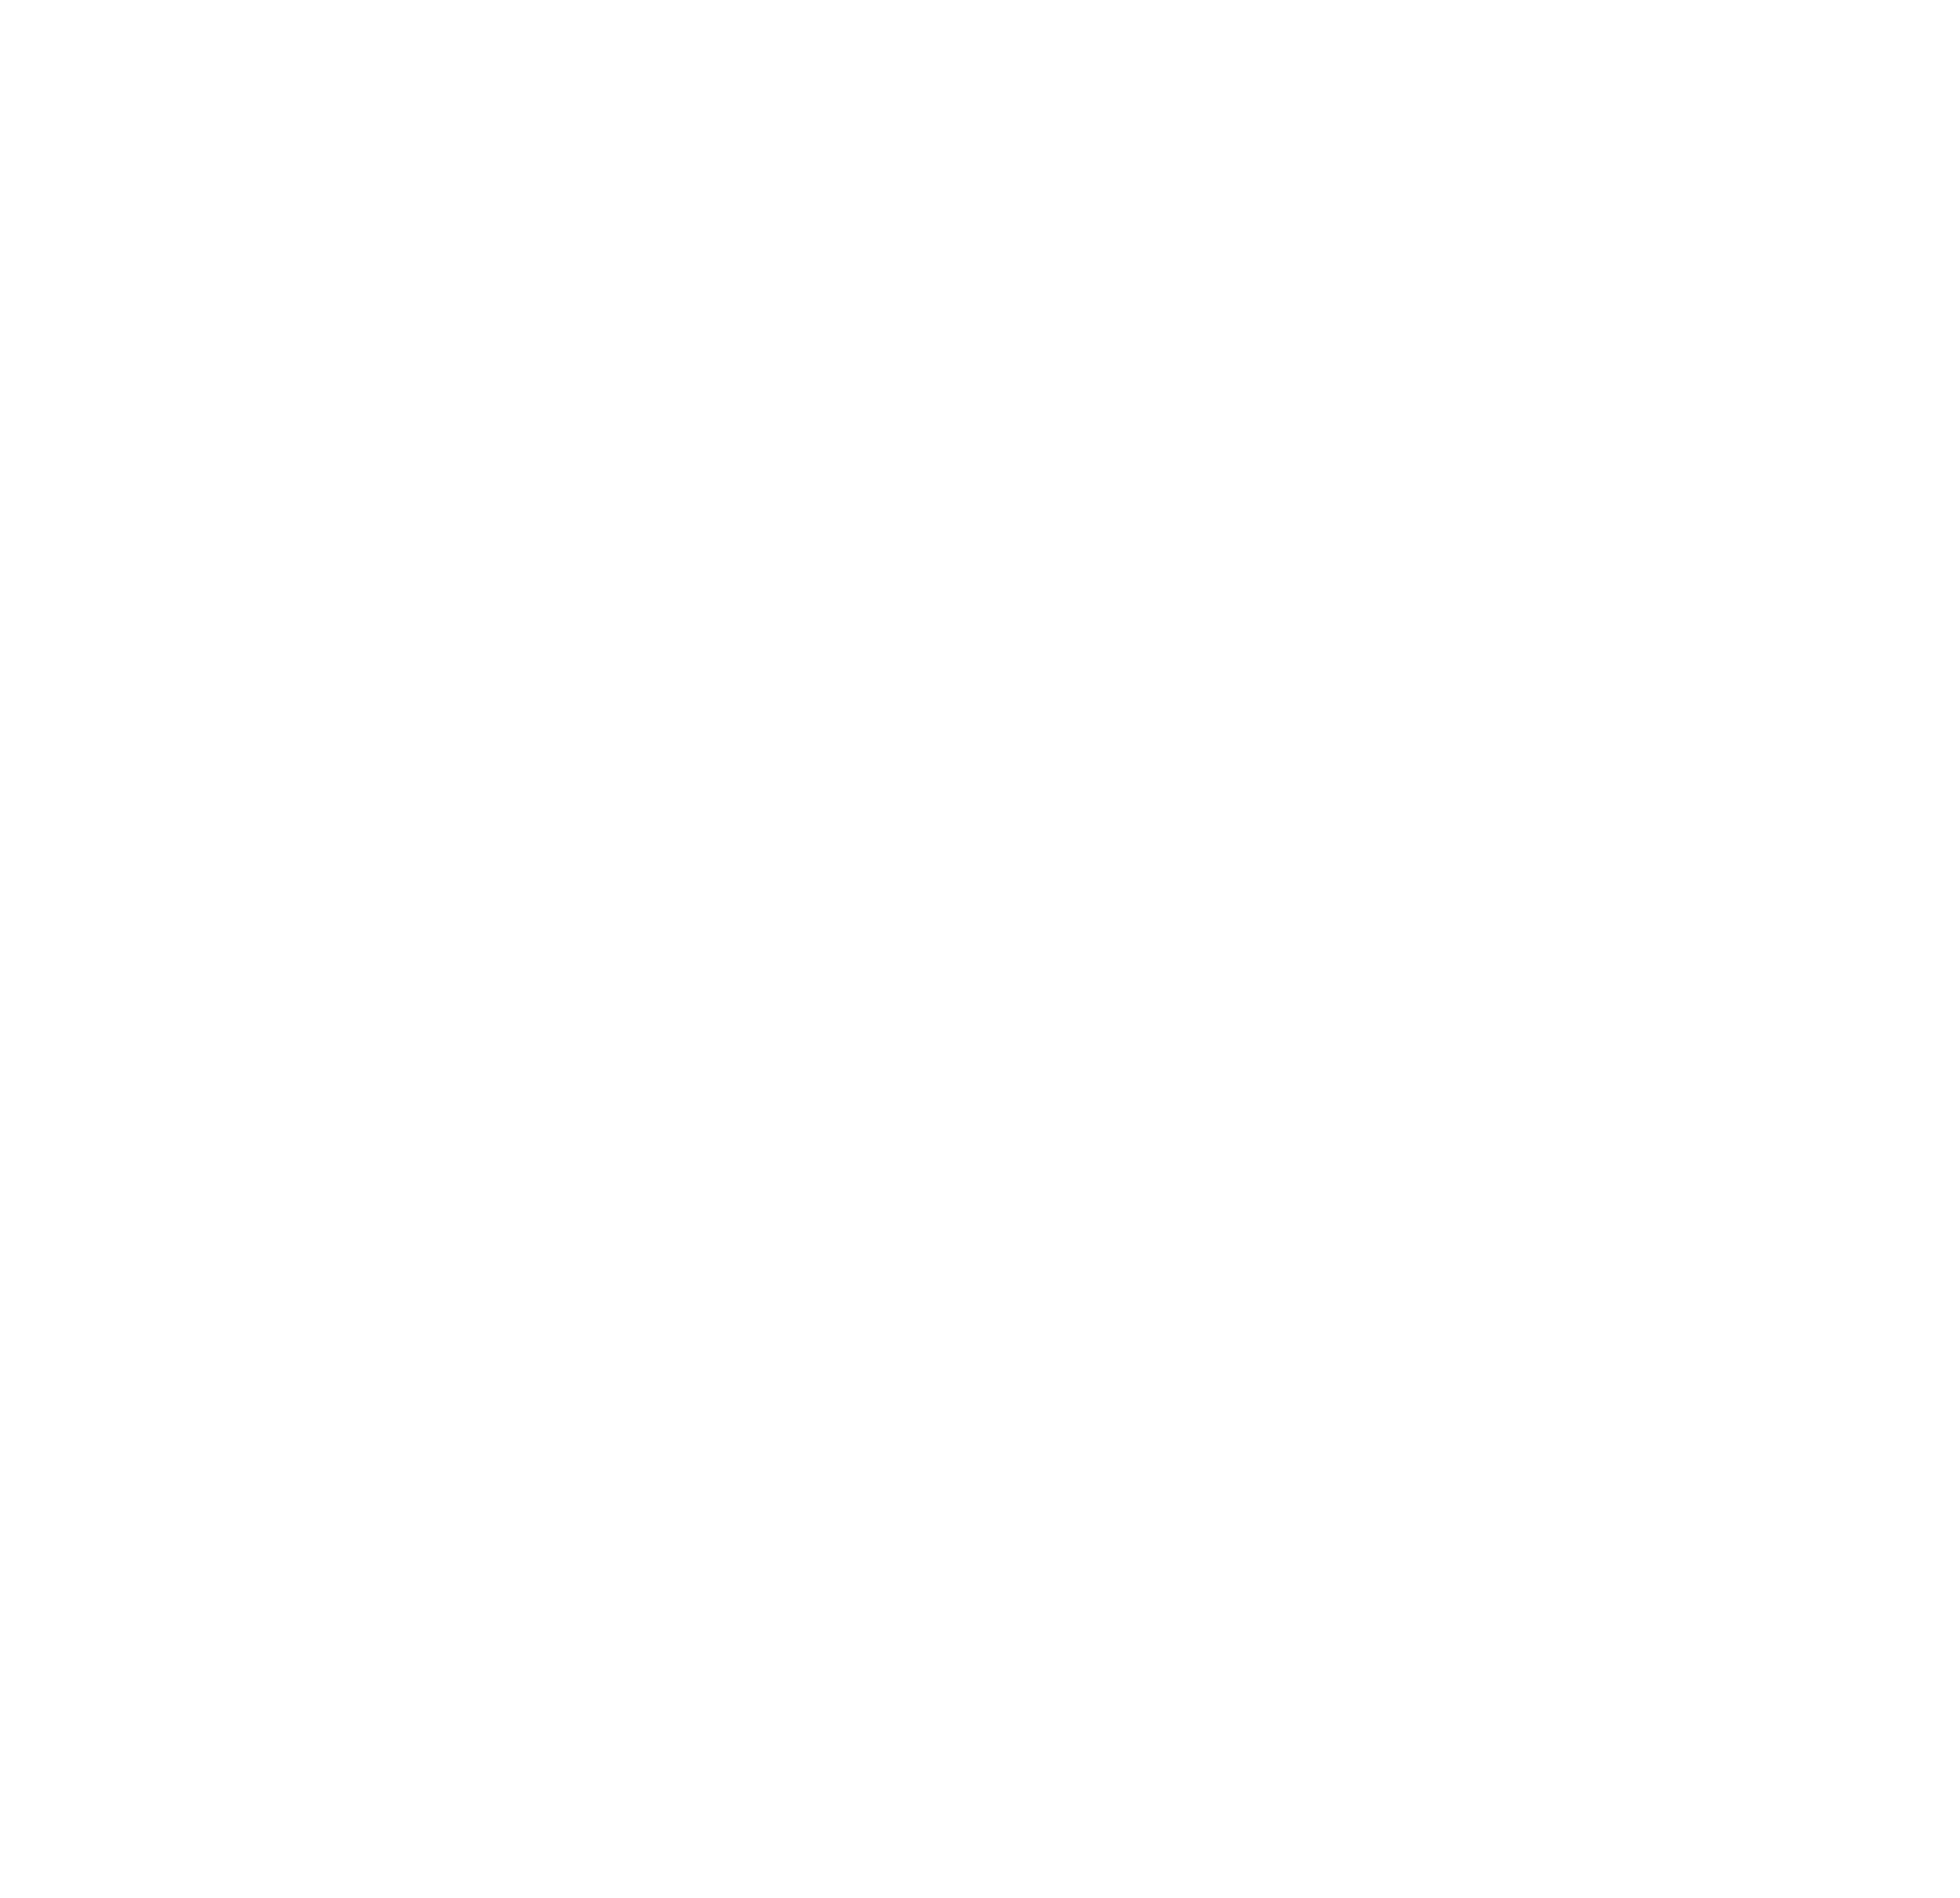 Merry Christmas and Happy New Year Text PNG Clip Art Image.